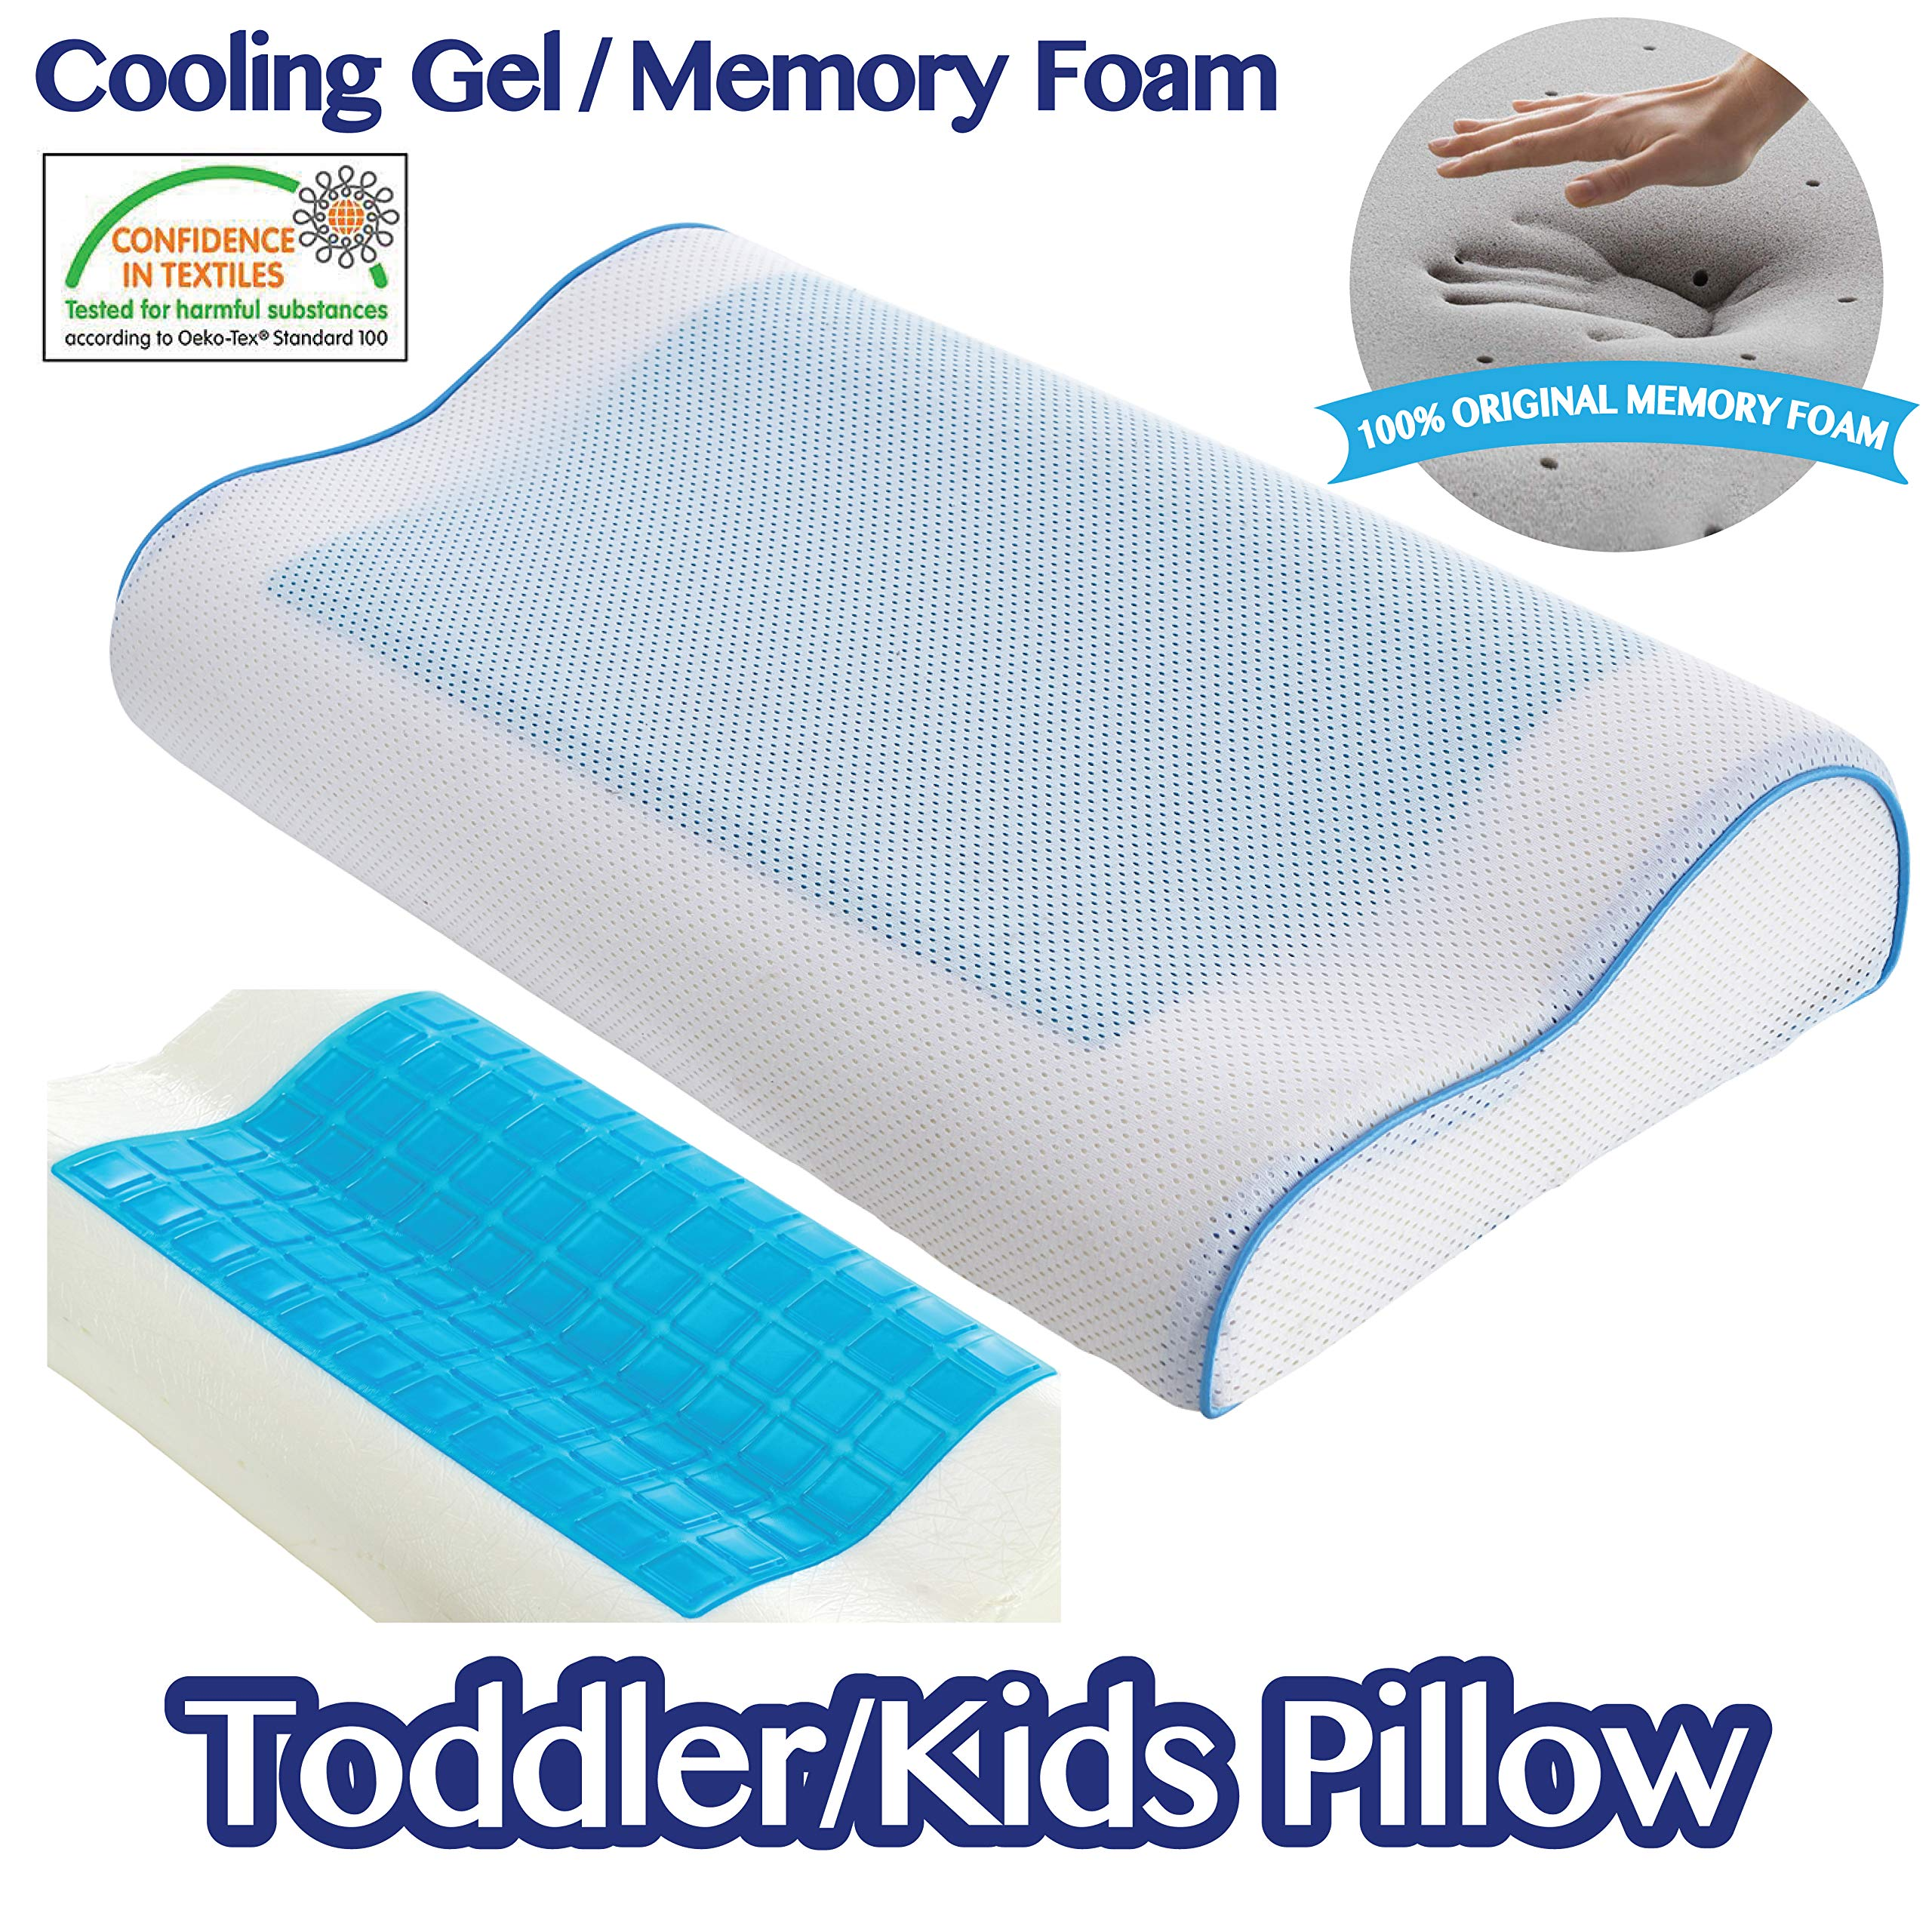 Kids Pillow - Cooling Pillow by Comfyt - Contour Pillow Memory Foam Pillow Cool Gel Pillow - Ideal for Kids up to 12 Year Kids